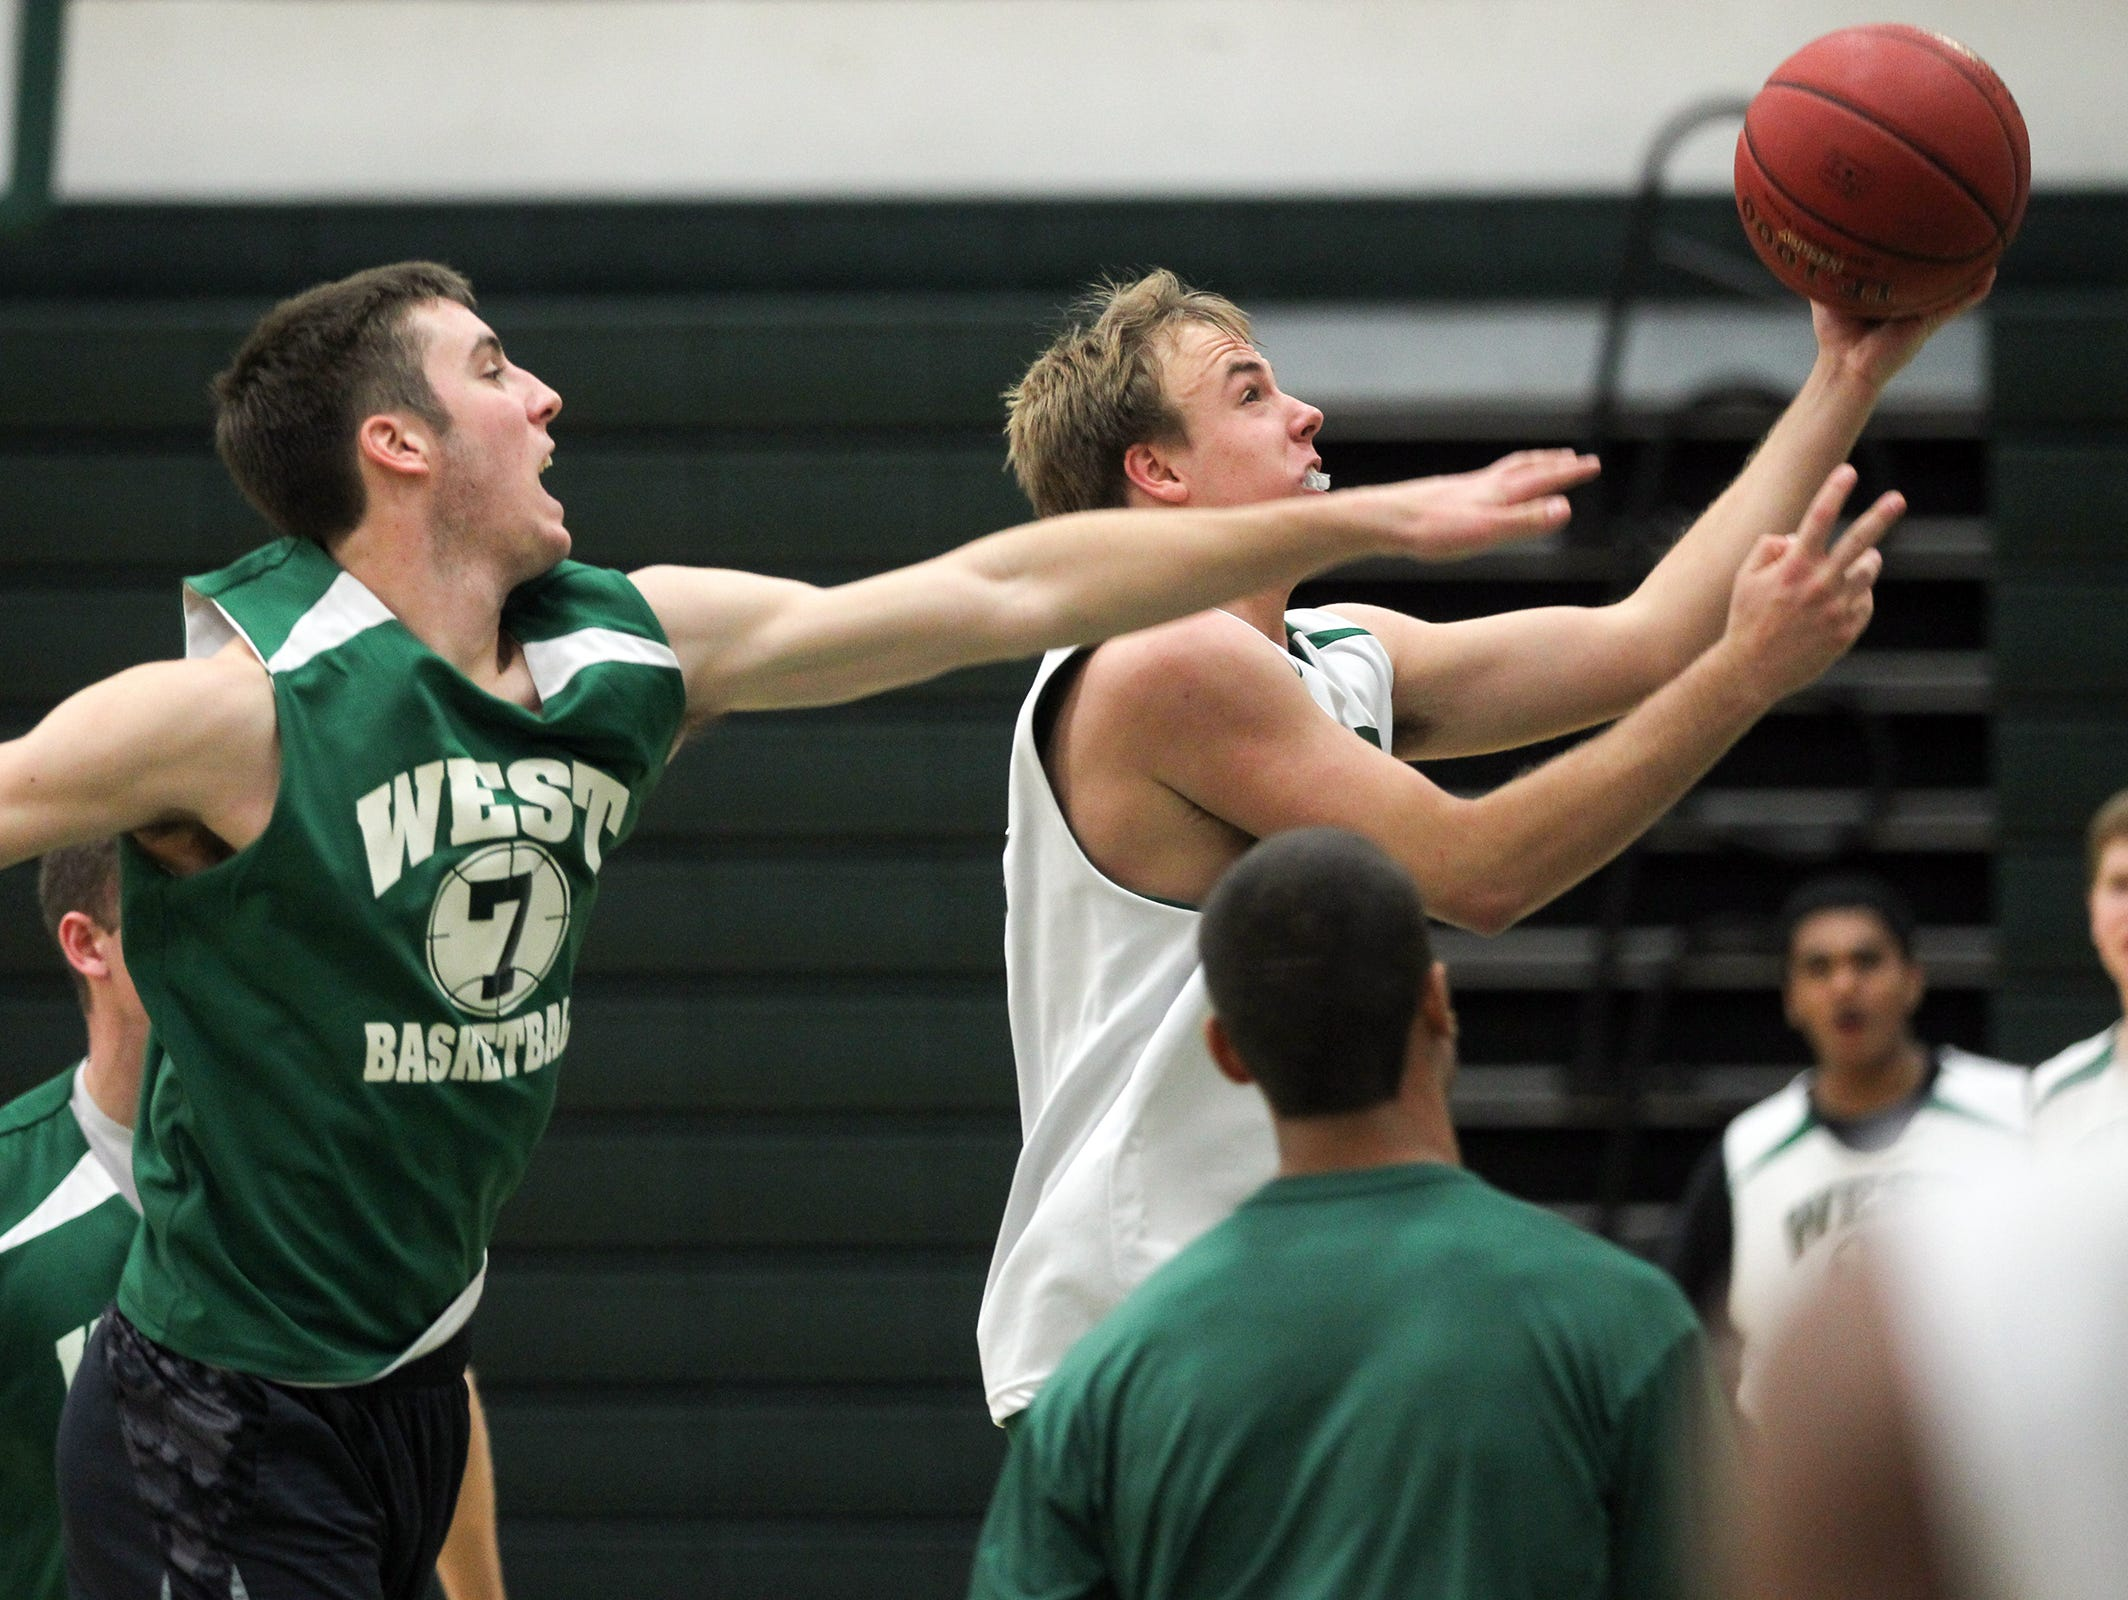 West High's Alex Henderson drives past Connor McCaffery during practice on Thursday, Nov. 19, 2015.